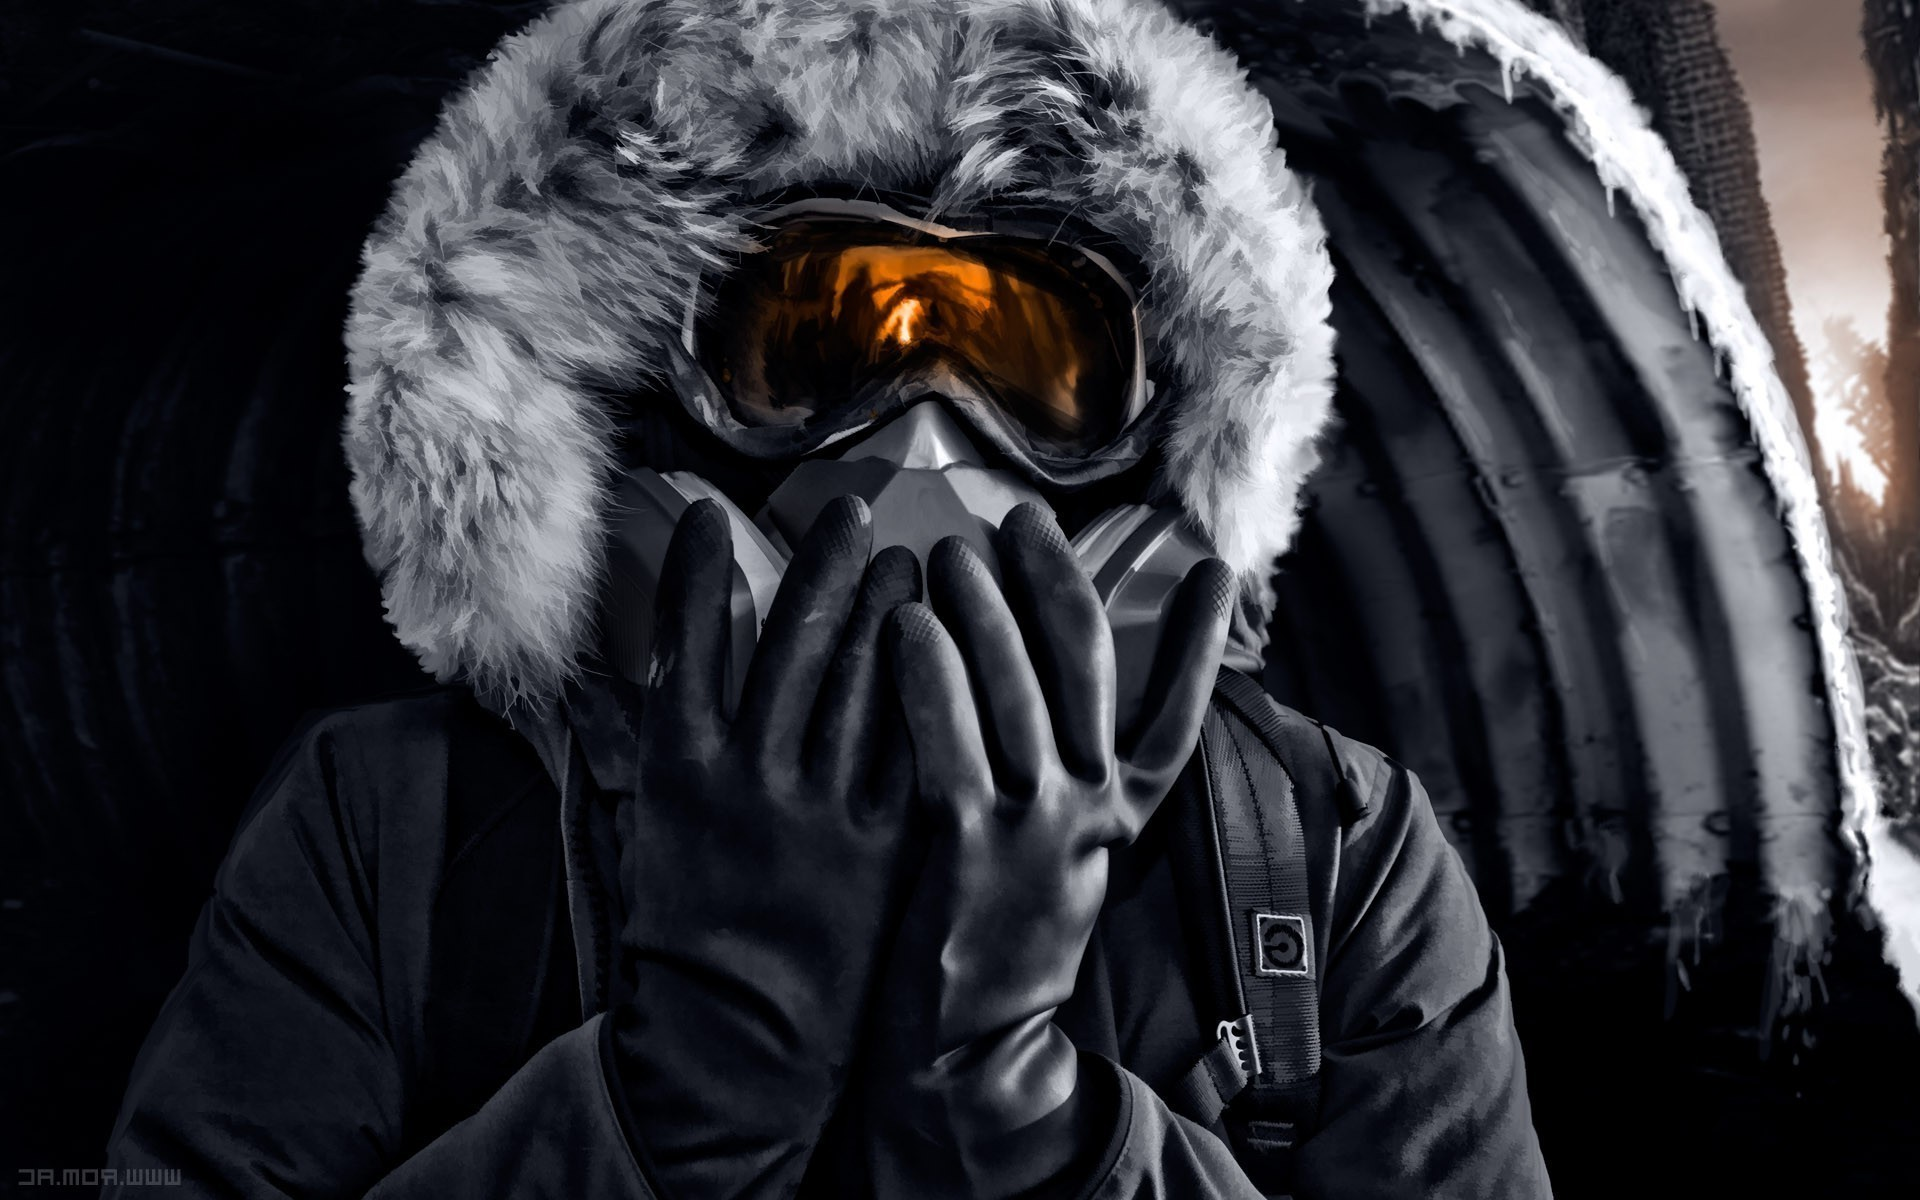 Cool Gas Mask Wallpapers 63 Images